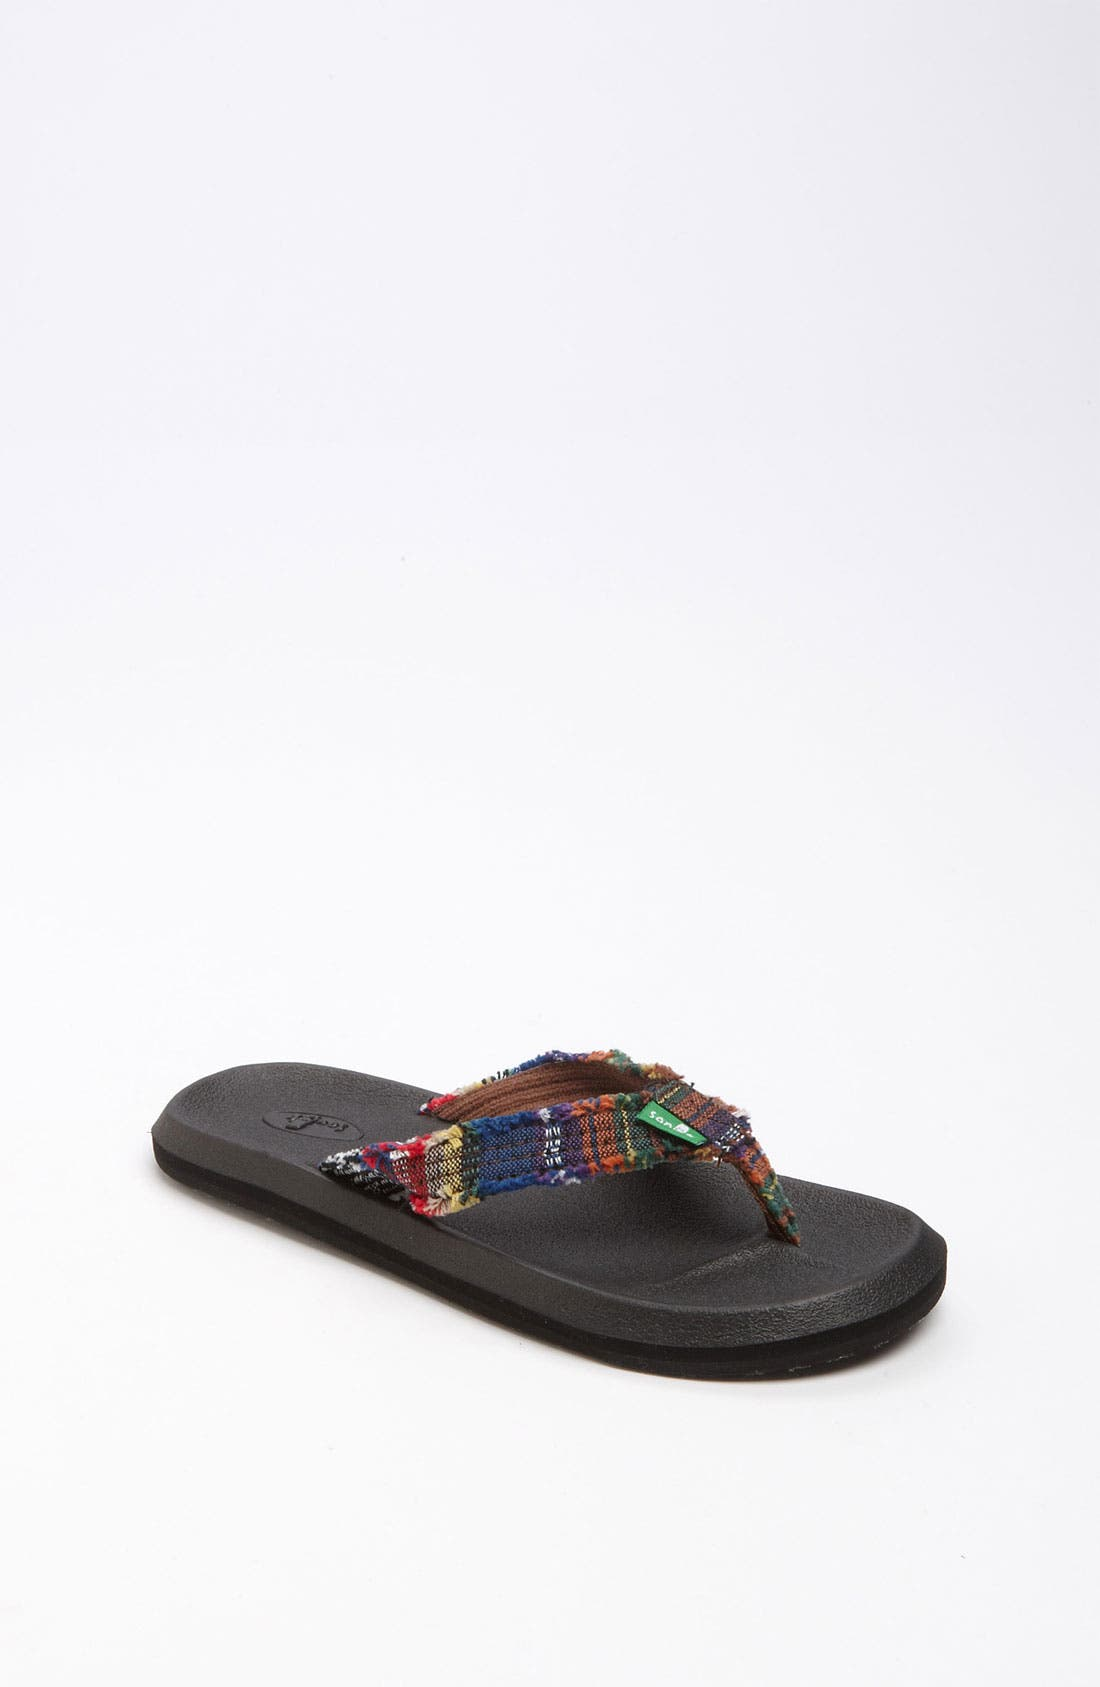 Main Image - Sanuk 'Who's Afraid' Flip Flop (Toddler, Little Kid & Big Kid)